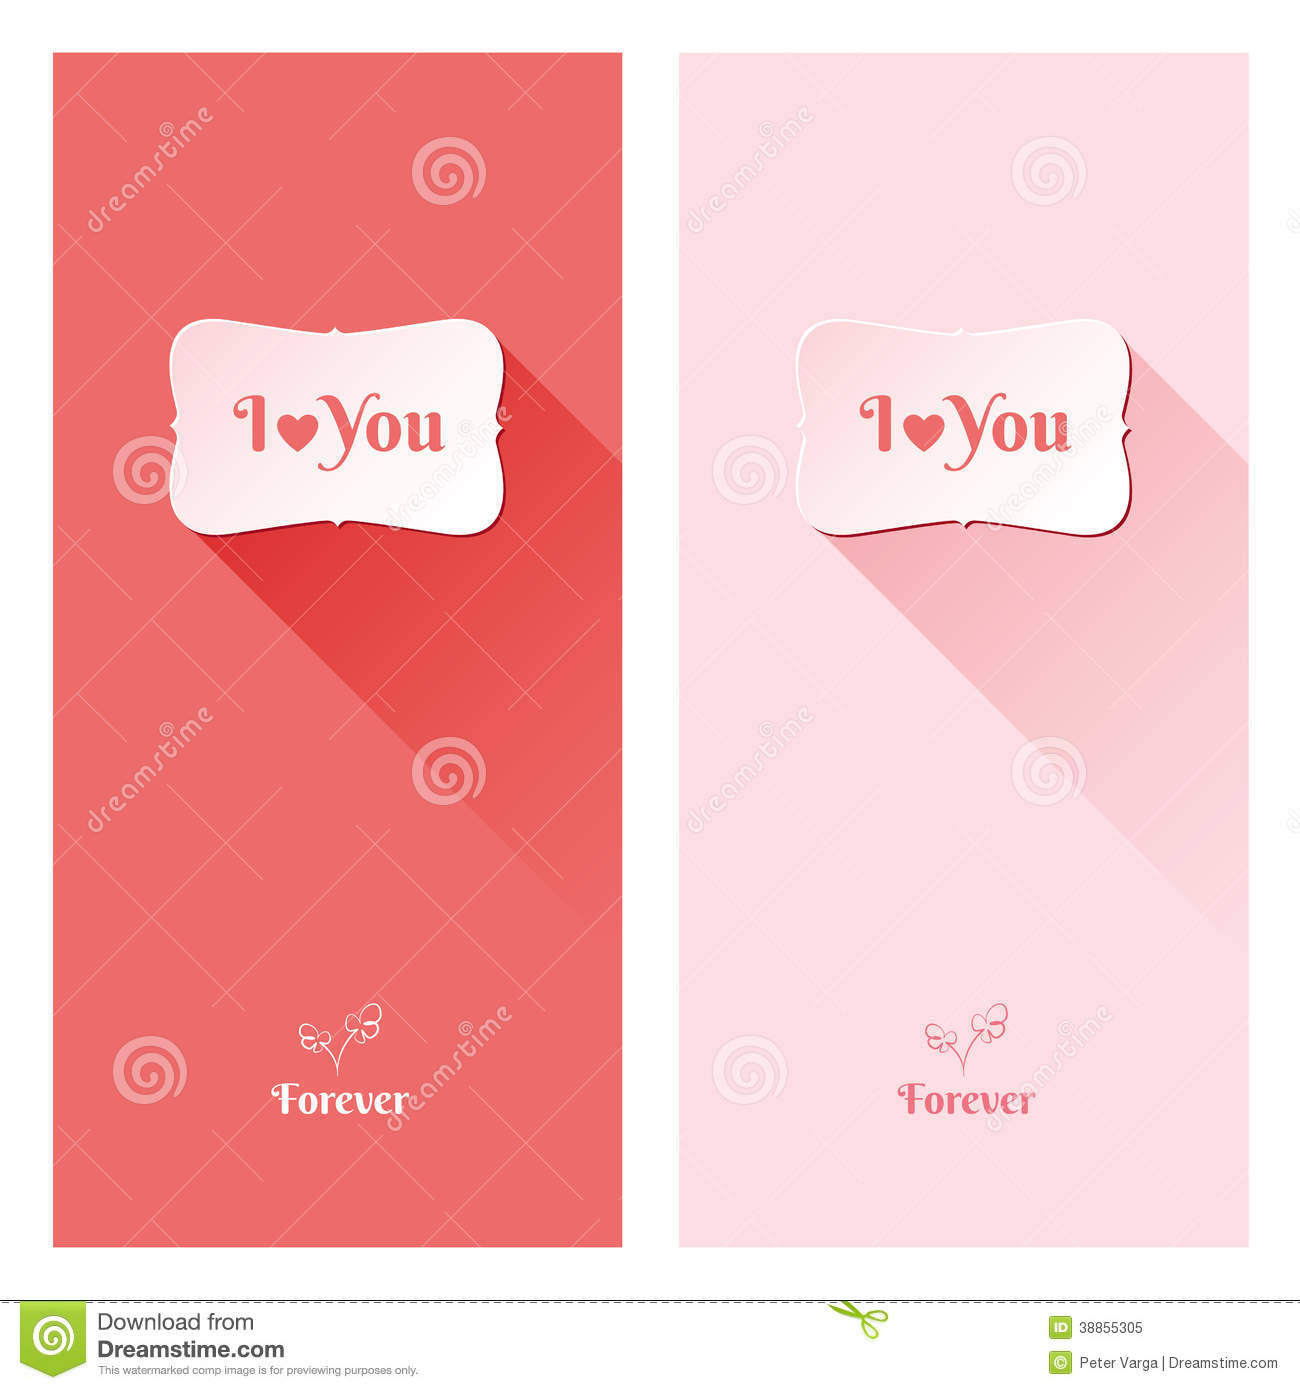 Beautiful Love Greeting Cards Stock Vector - Illustration of sign ...